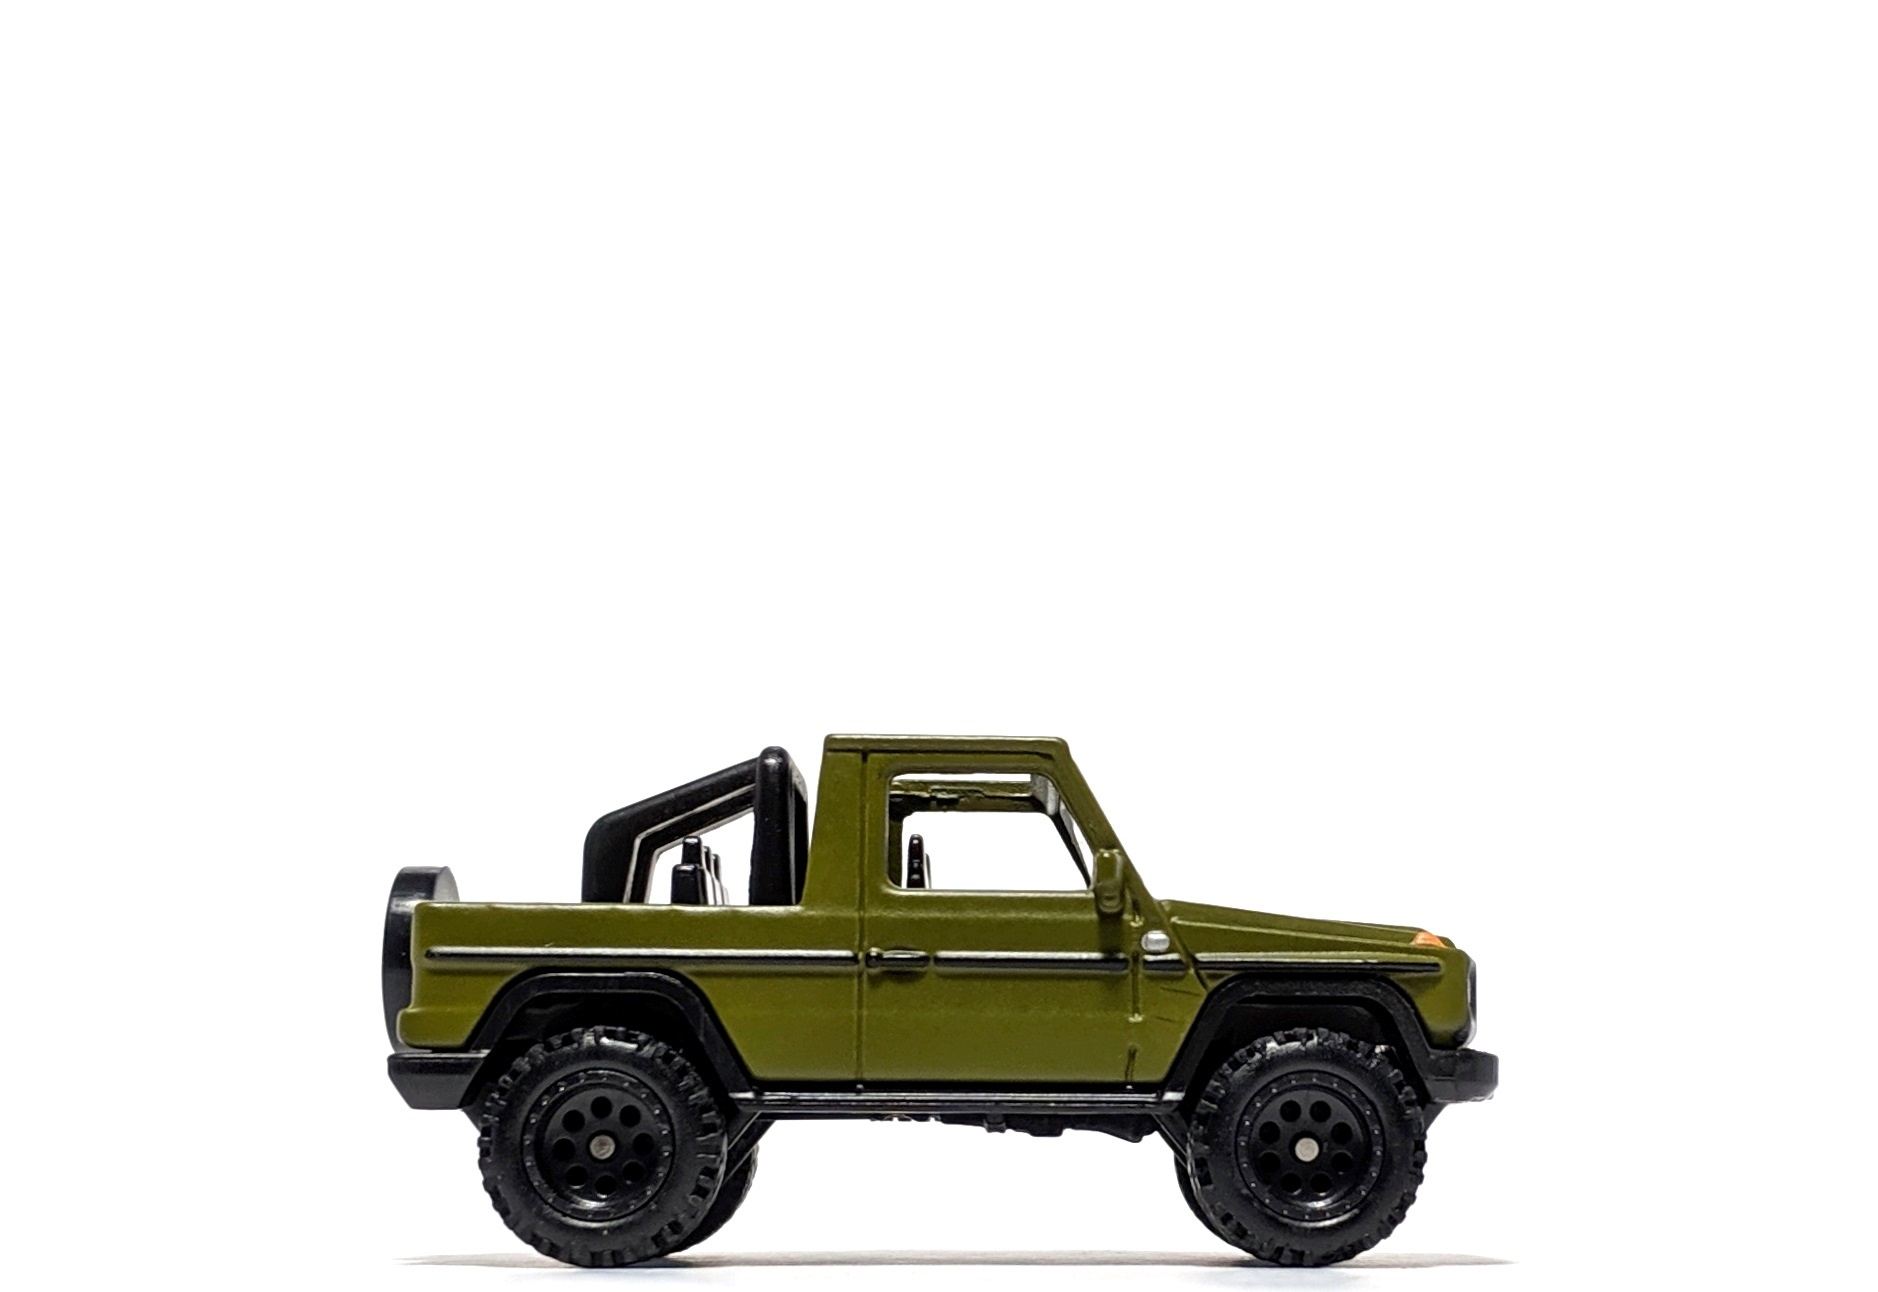 '91 Mercedes-Benz G-Class, by Hot Wheels (Fast & Furious: Furious Off-Road)